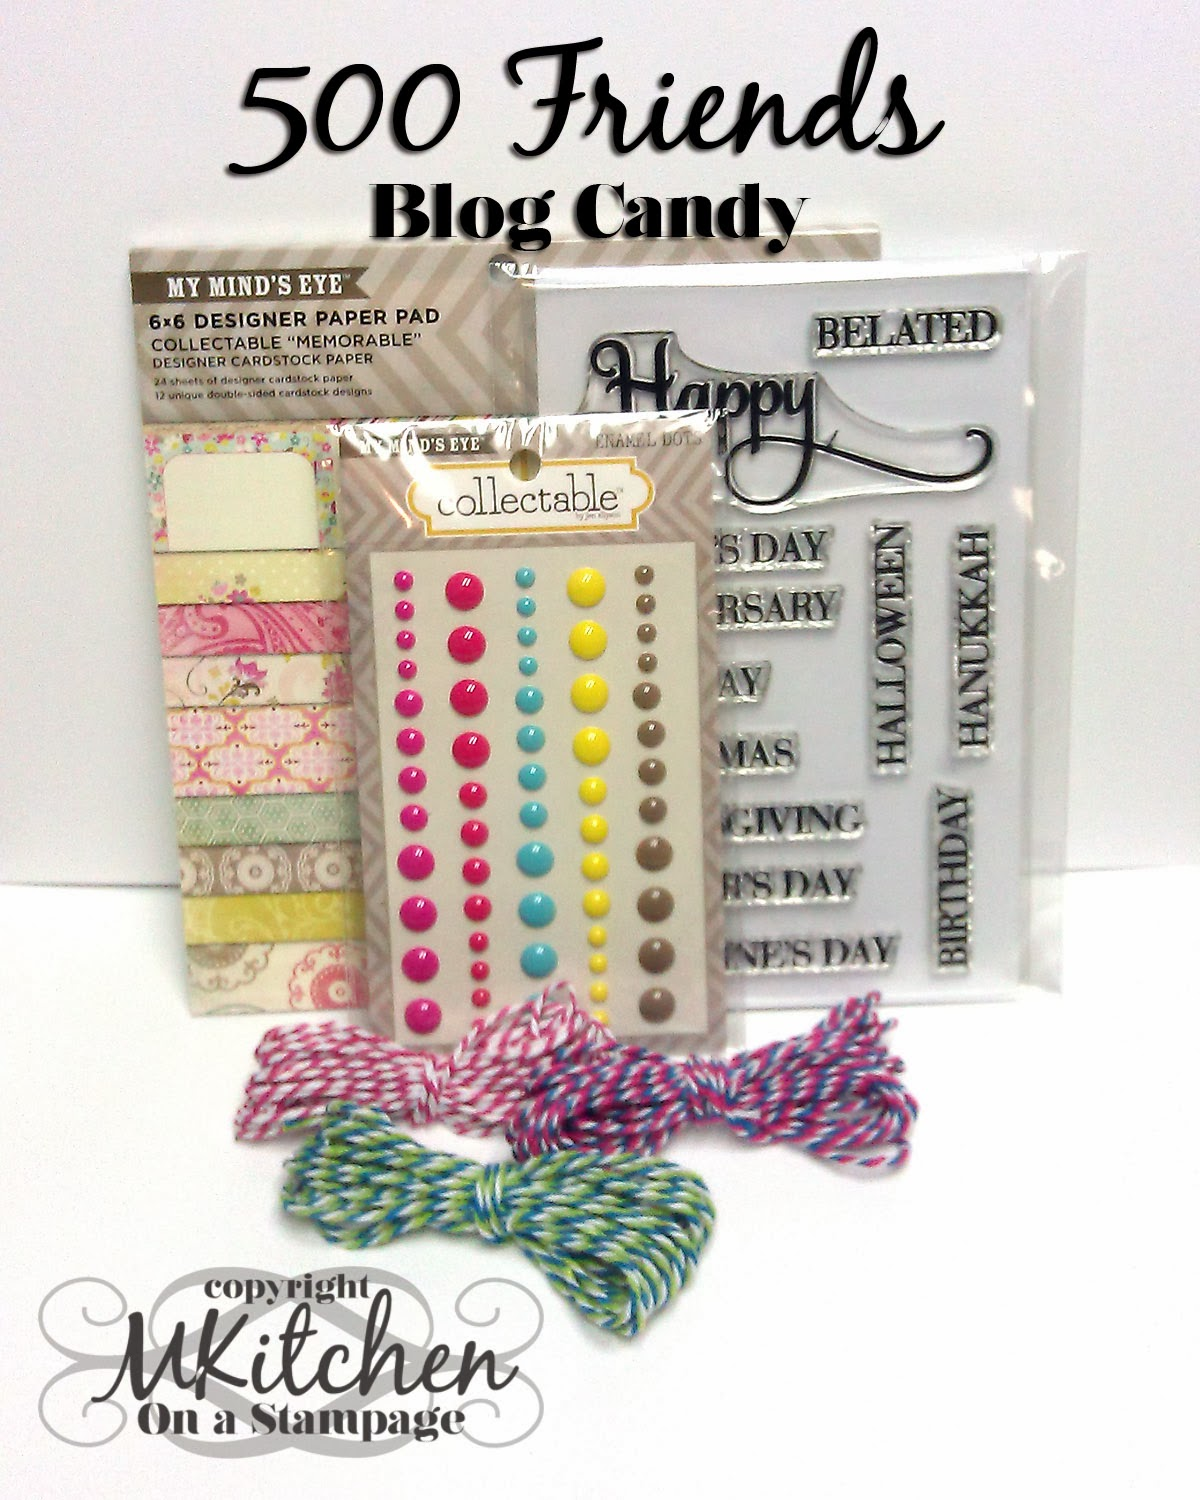 I have blog candy!